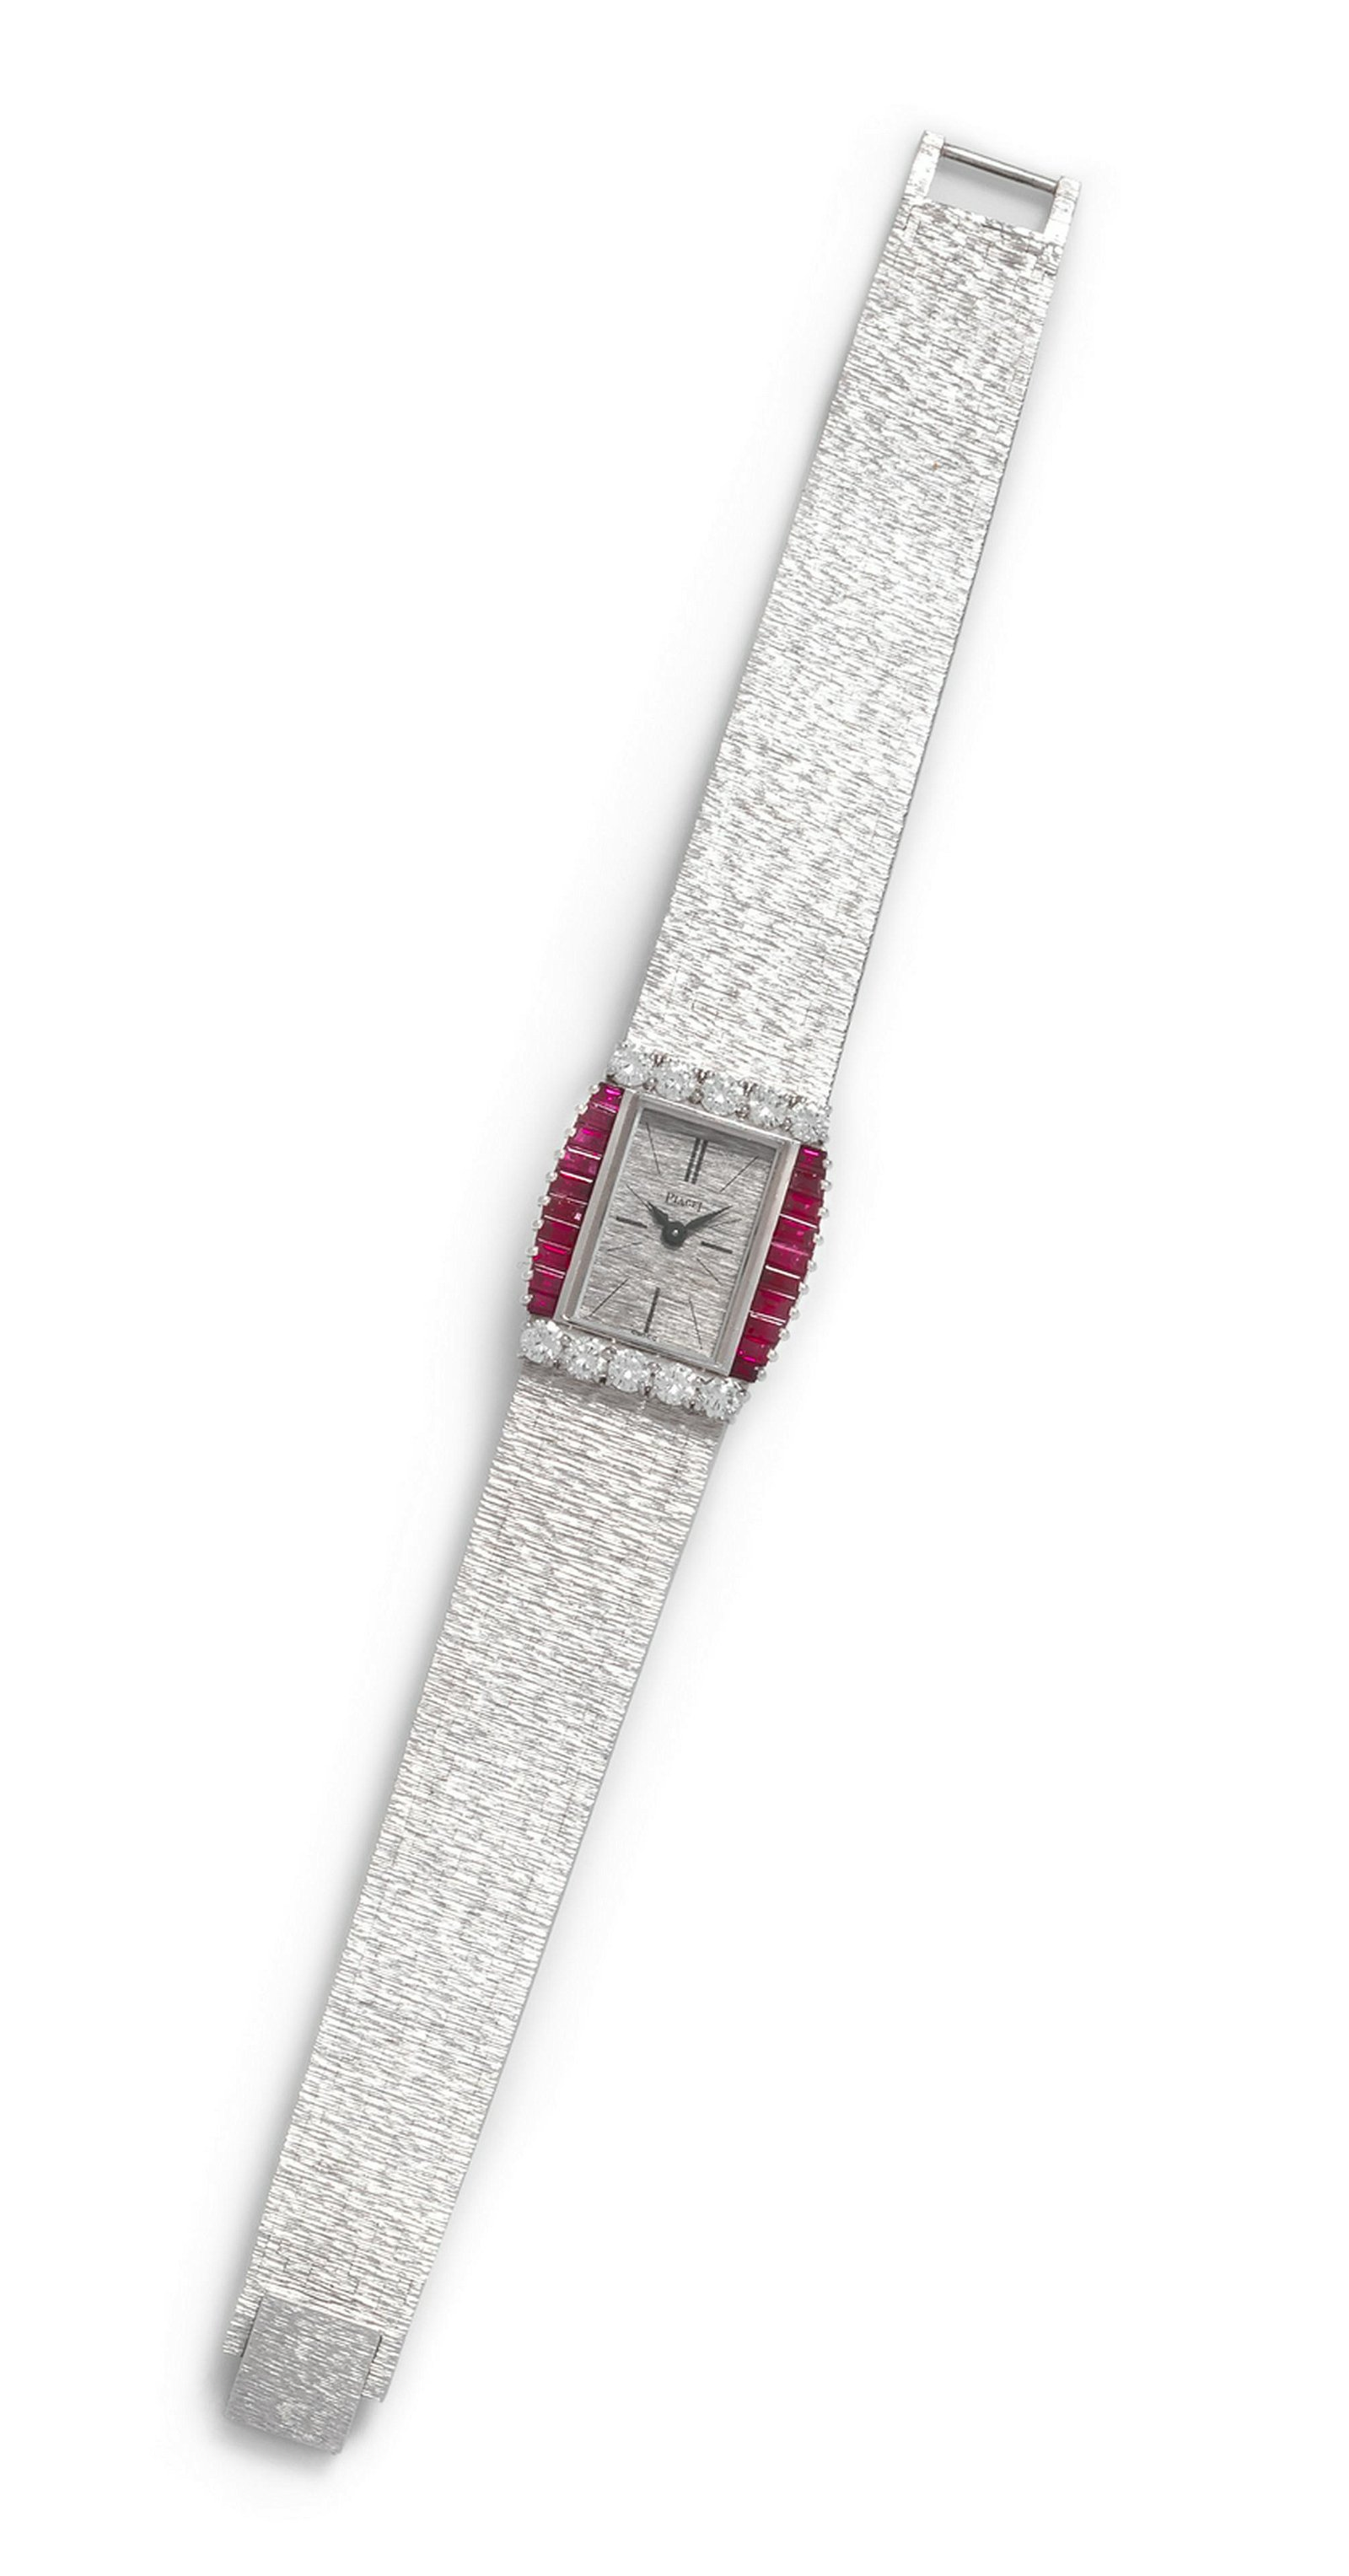 An 18 Karat White Gold Diamond and Ruby Ref. 3876A6